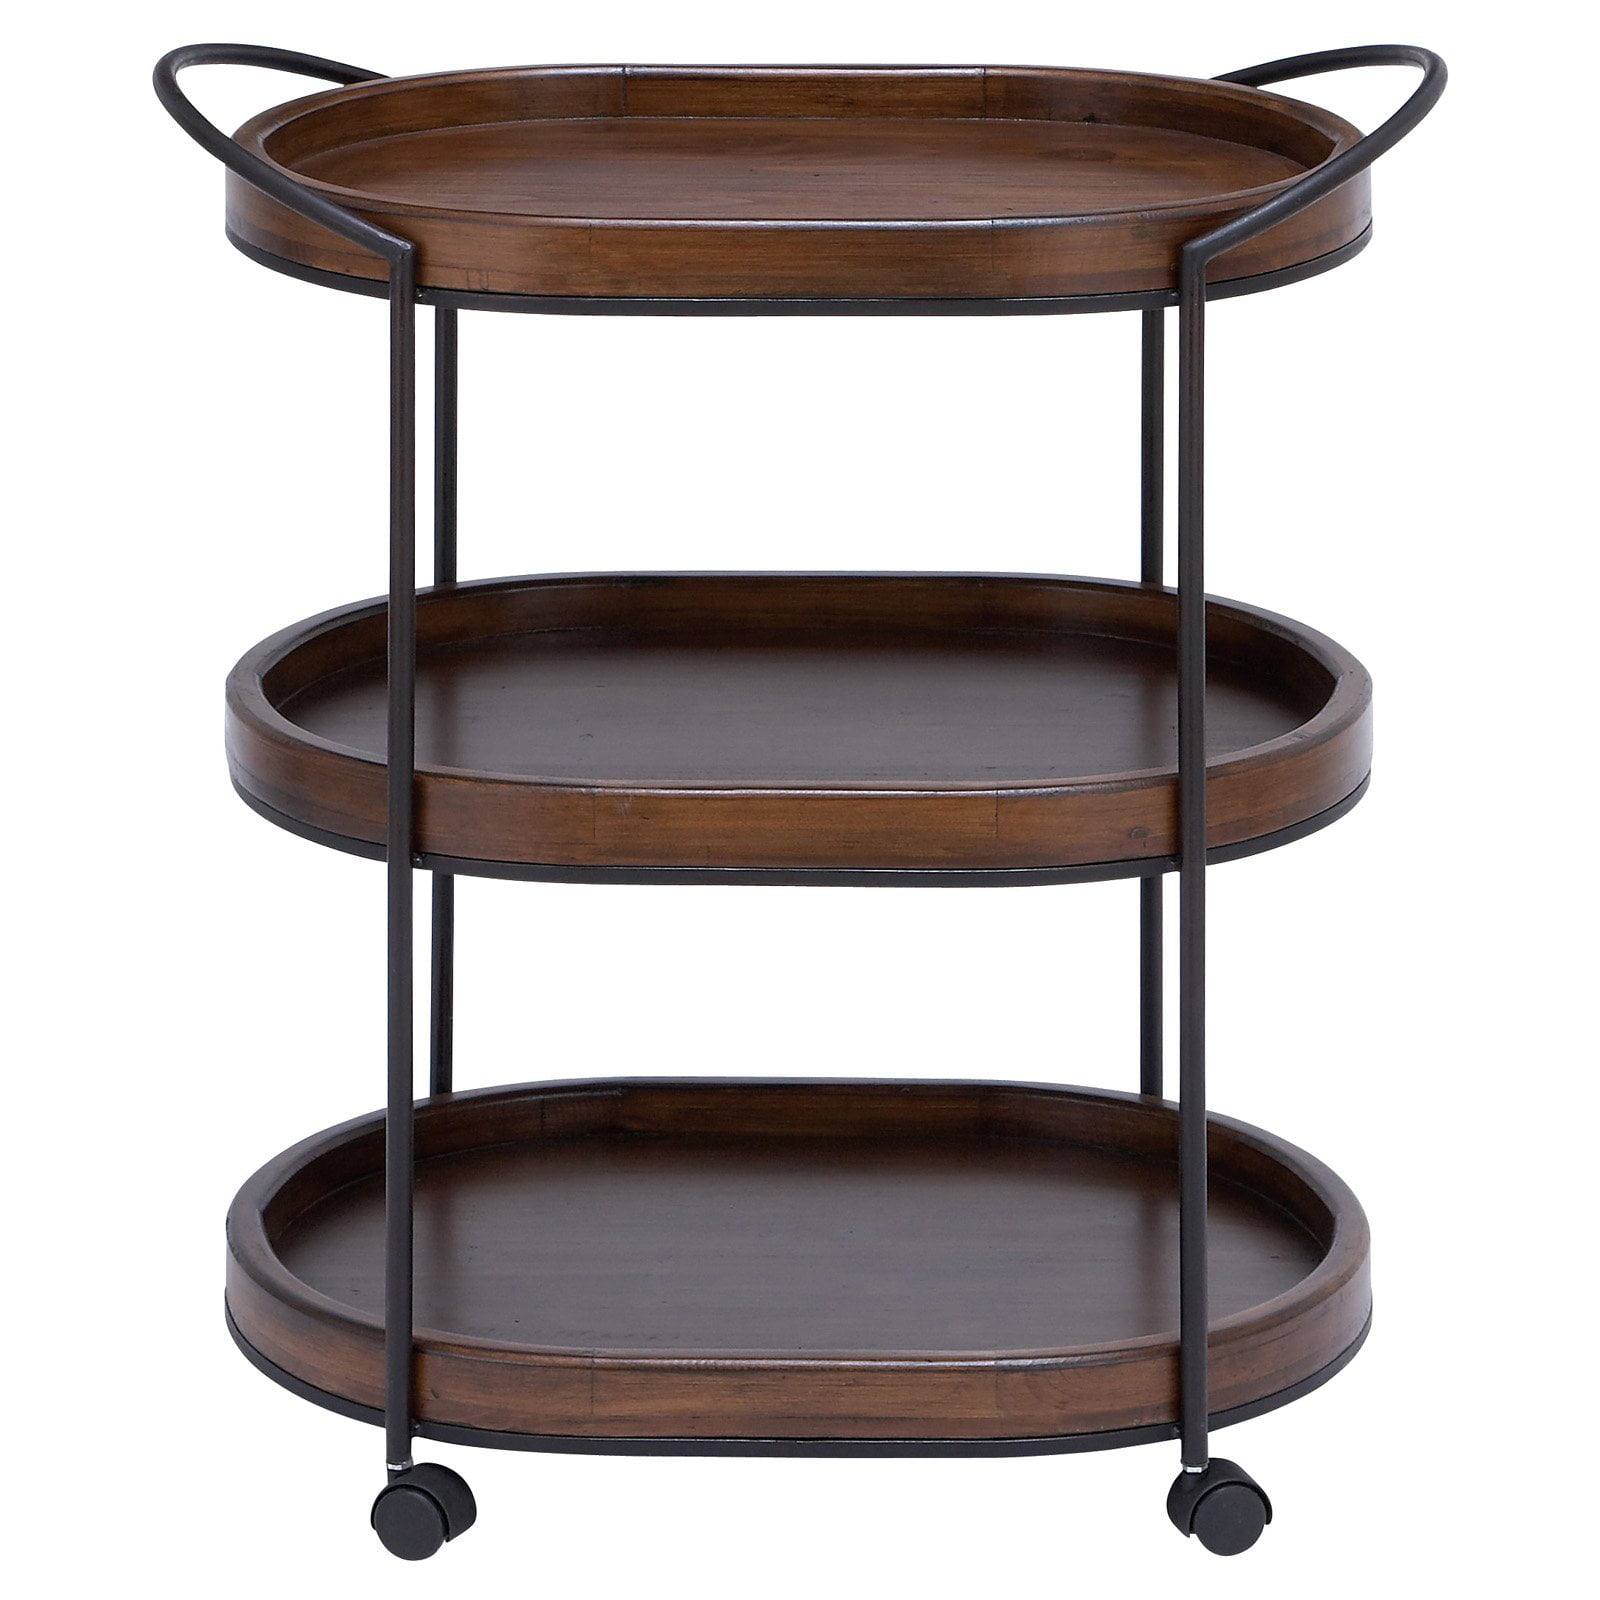 DecMode 3-Tiered Wood Serving Cart by DecoMode Collection